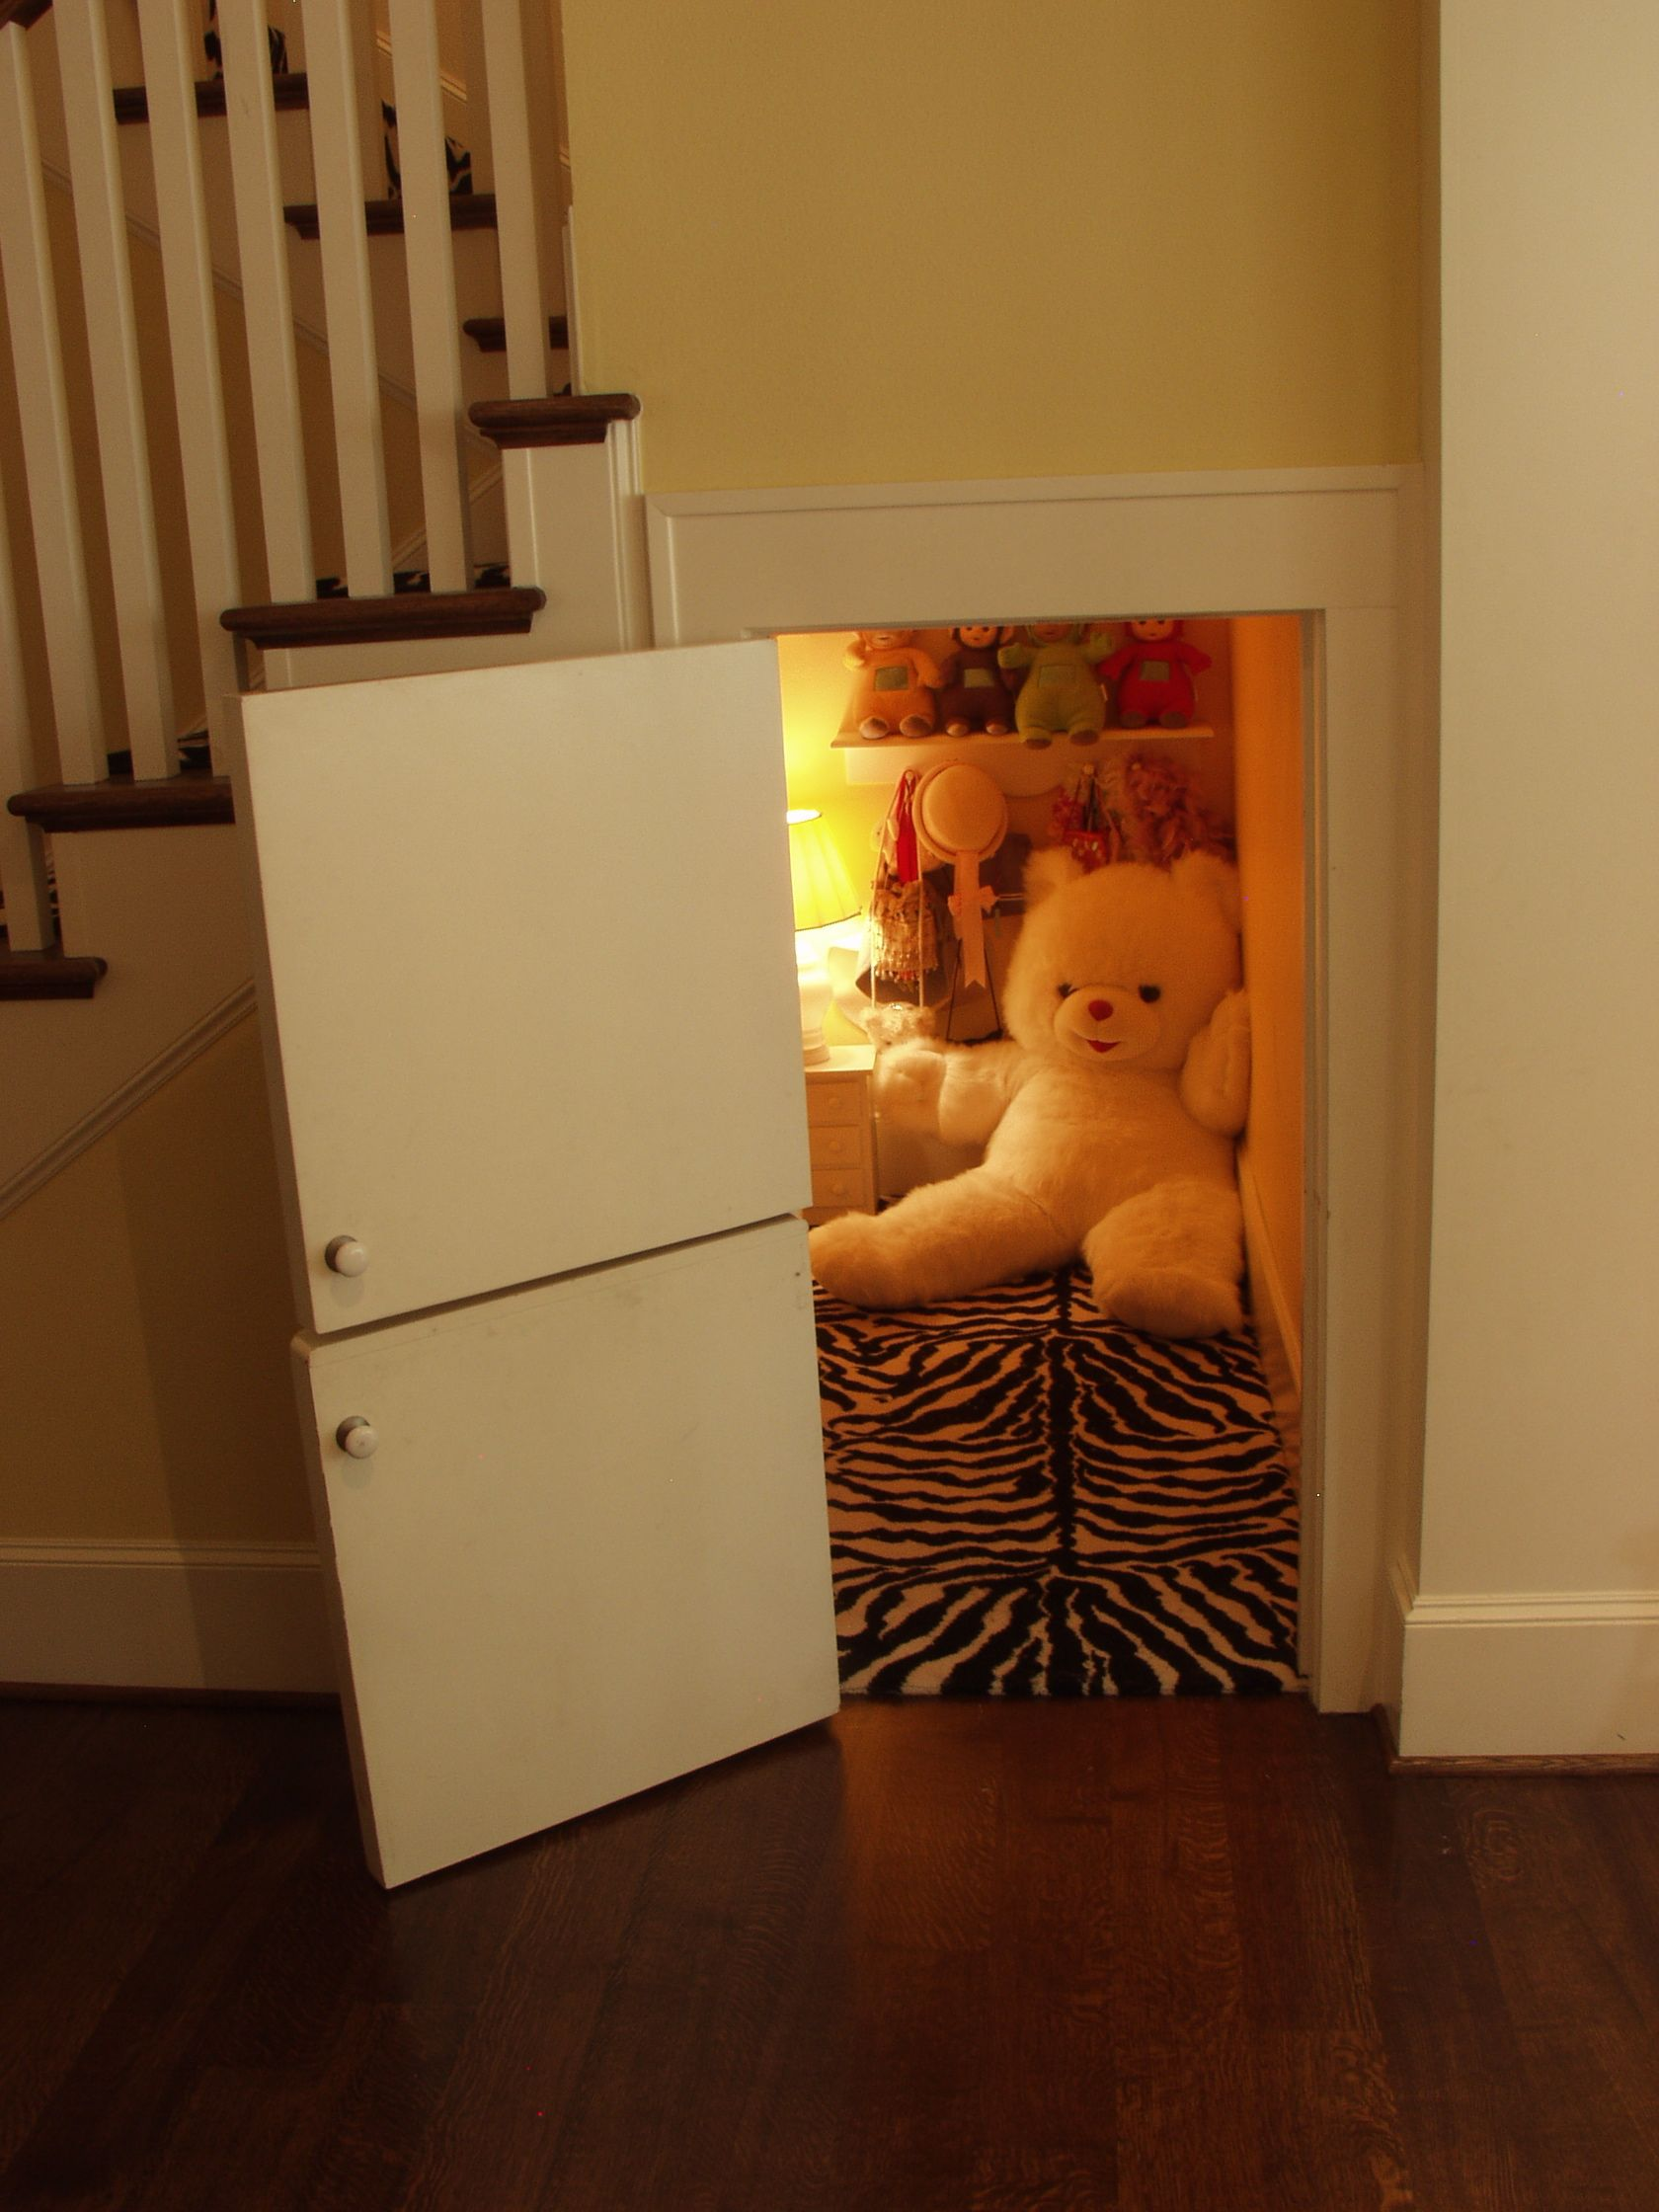 Every kid should have a secret hiding place under the stairs!